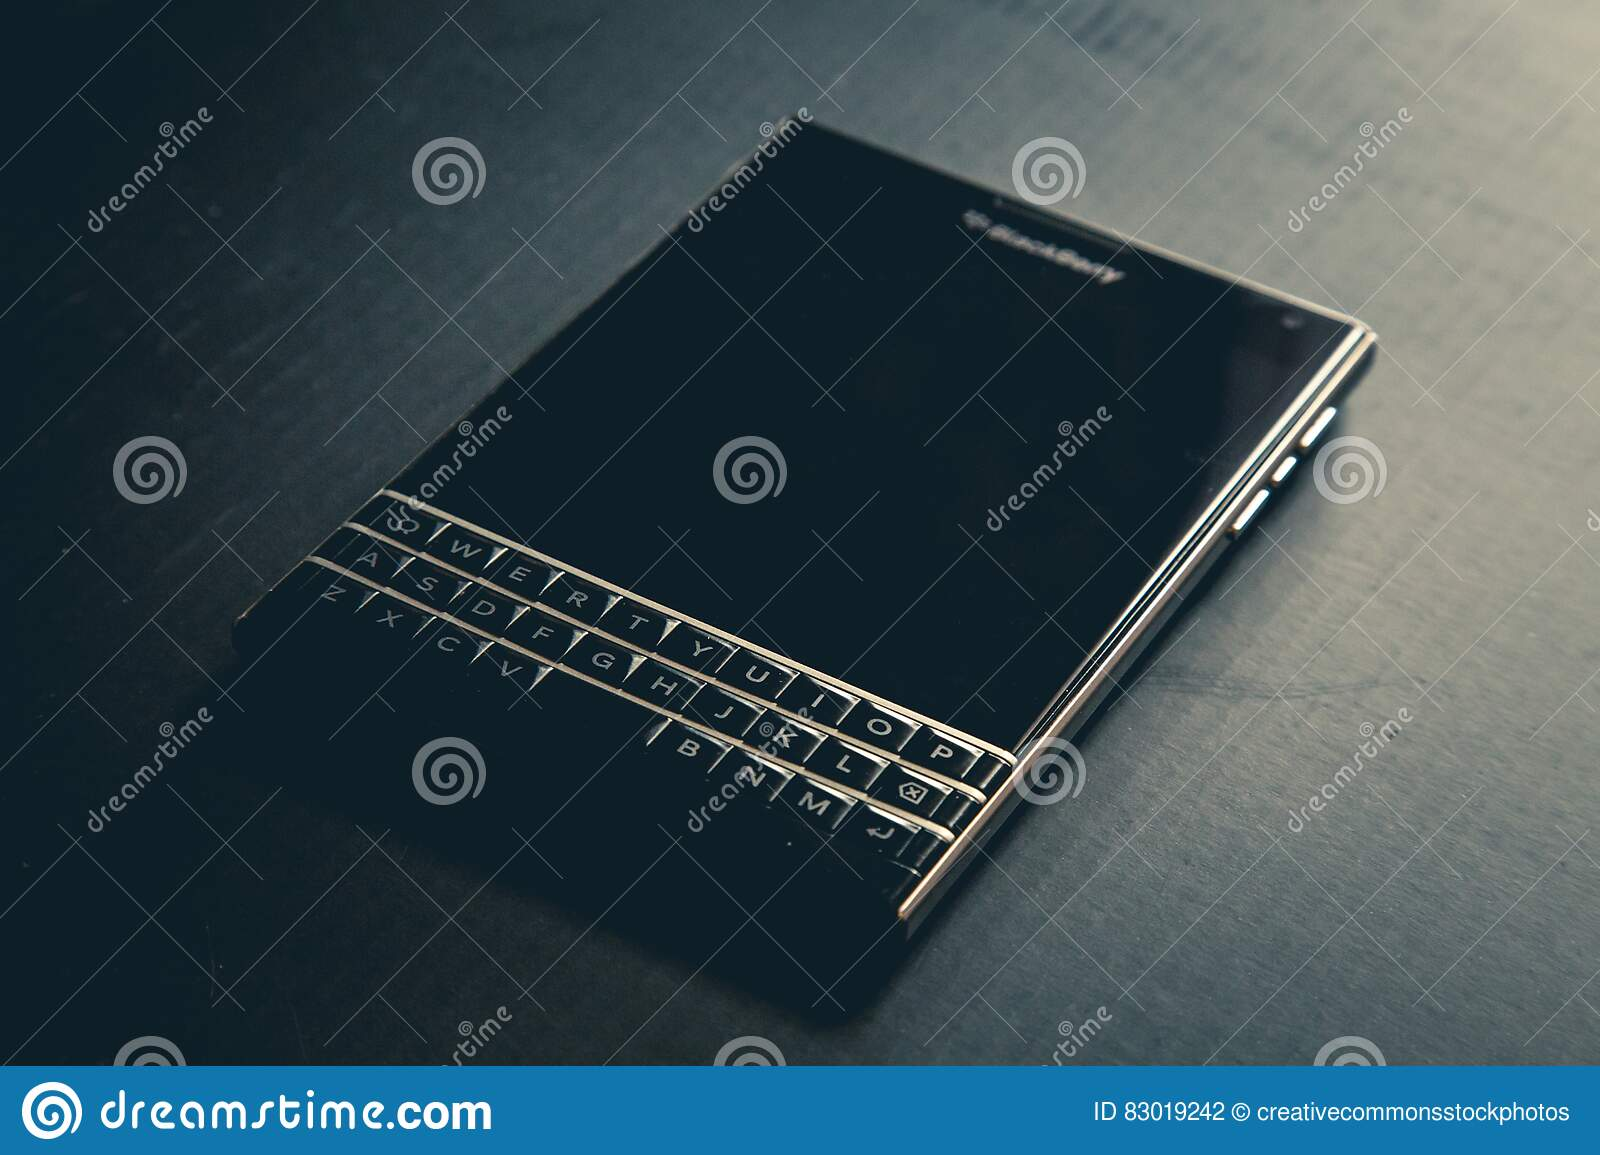 Download Turned Off Blackberry Qwerty Phone Stock Photo - Image of blackberry, free: 83019242